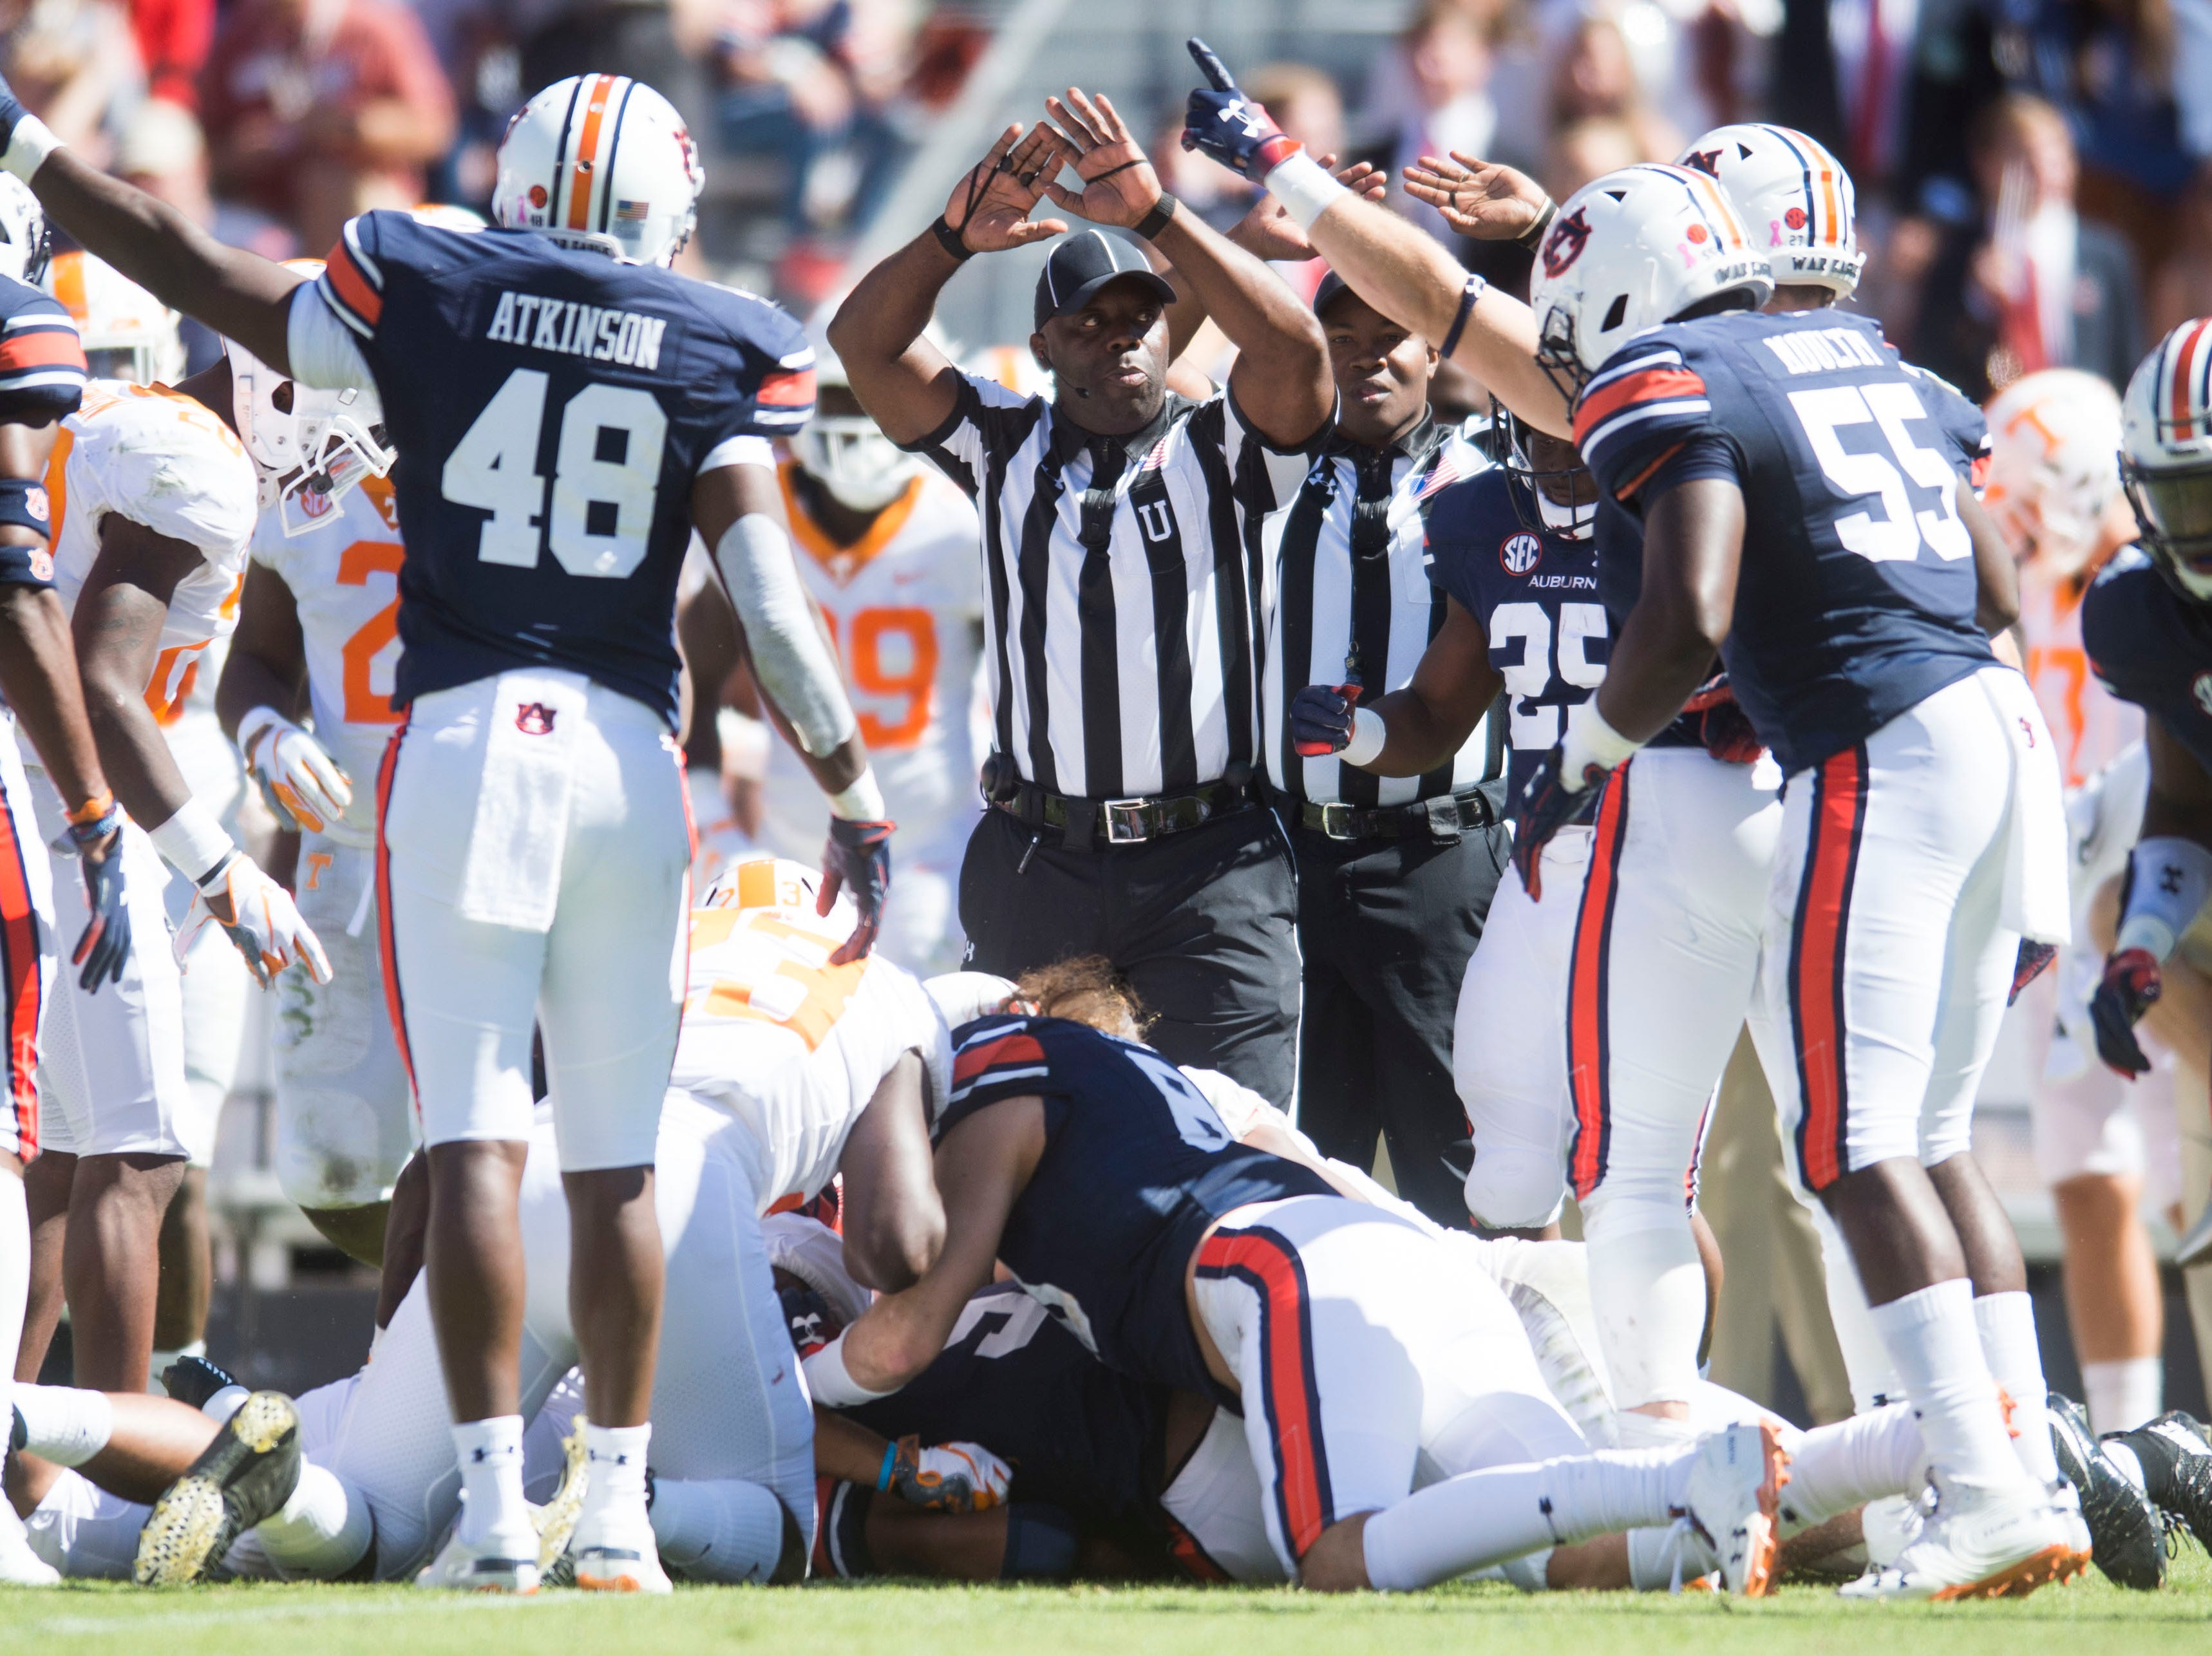 An official stops play during a game between Tennessee and Auburn at Jordan-Hare Stadium in Auburn, Ala. Saturday, Oct. 13, 2018. Tennessee defeated Auburn 30-24.